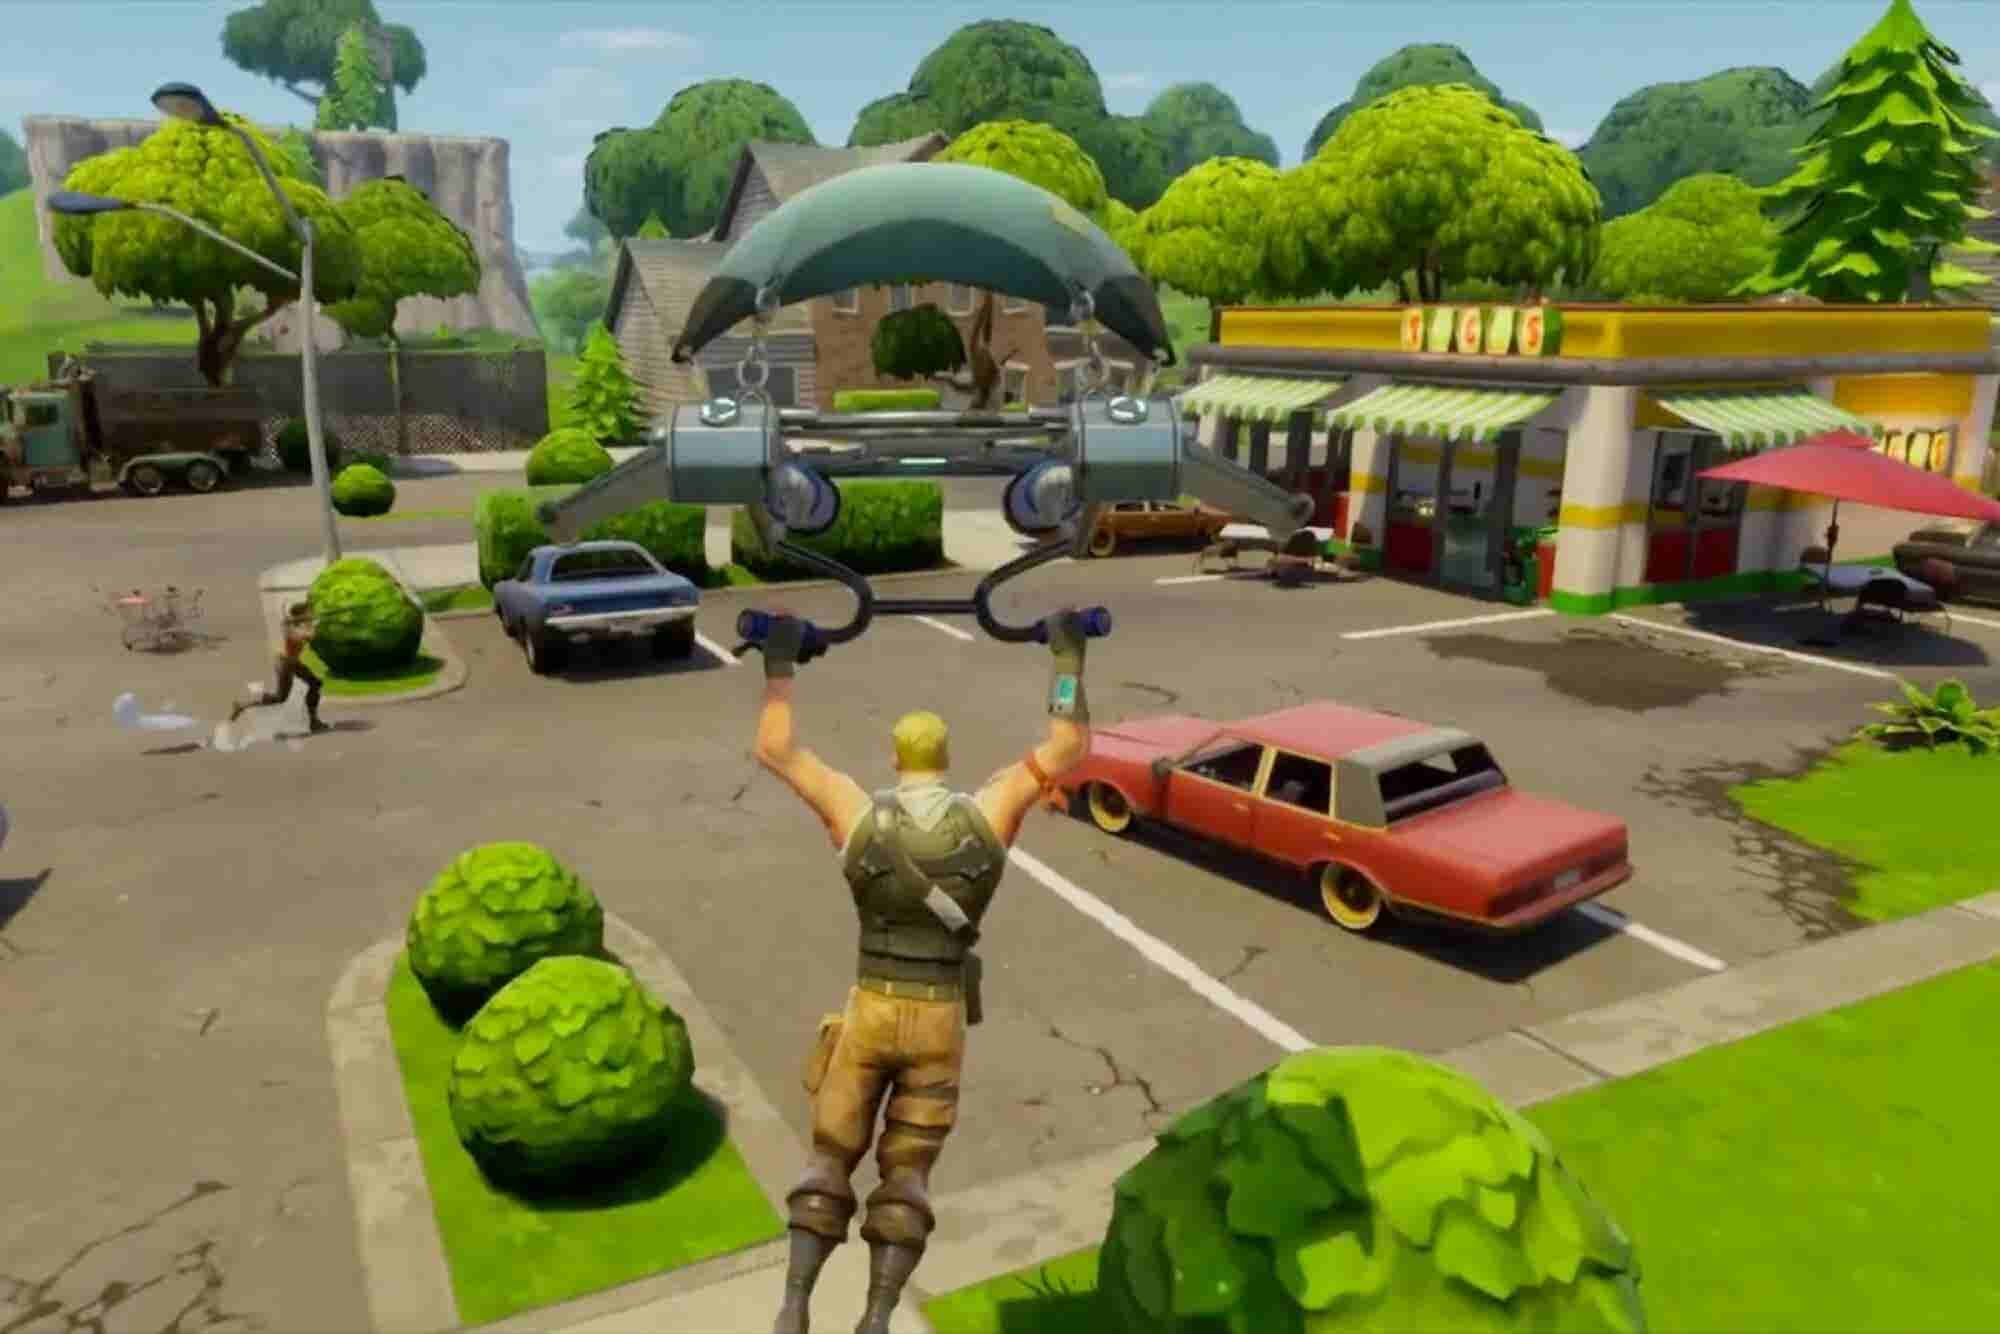 Fortnite's Millions, Icelandic Prison Escape and an IKEA-Assembling Robot: 3 Things to Know Today